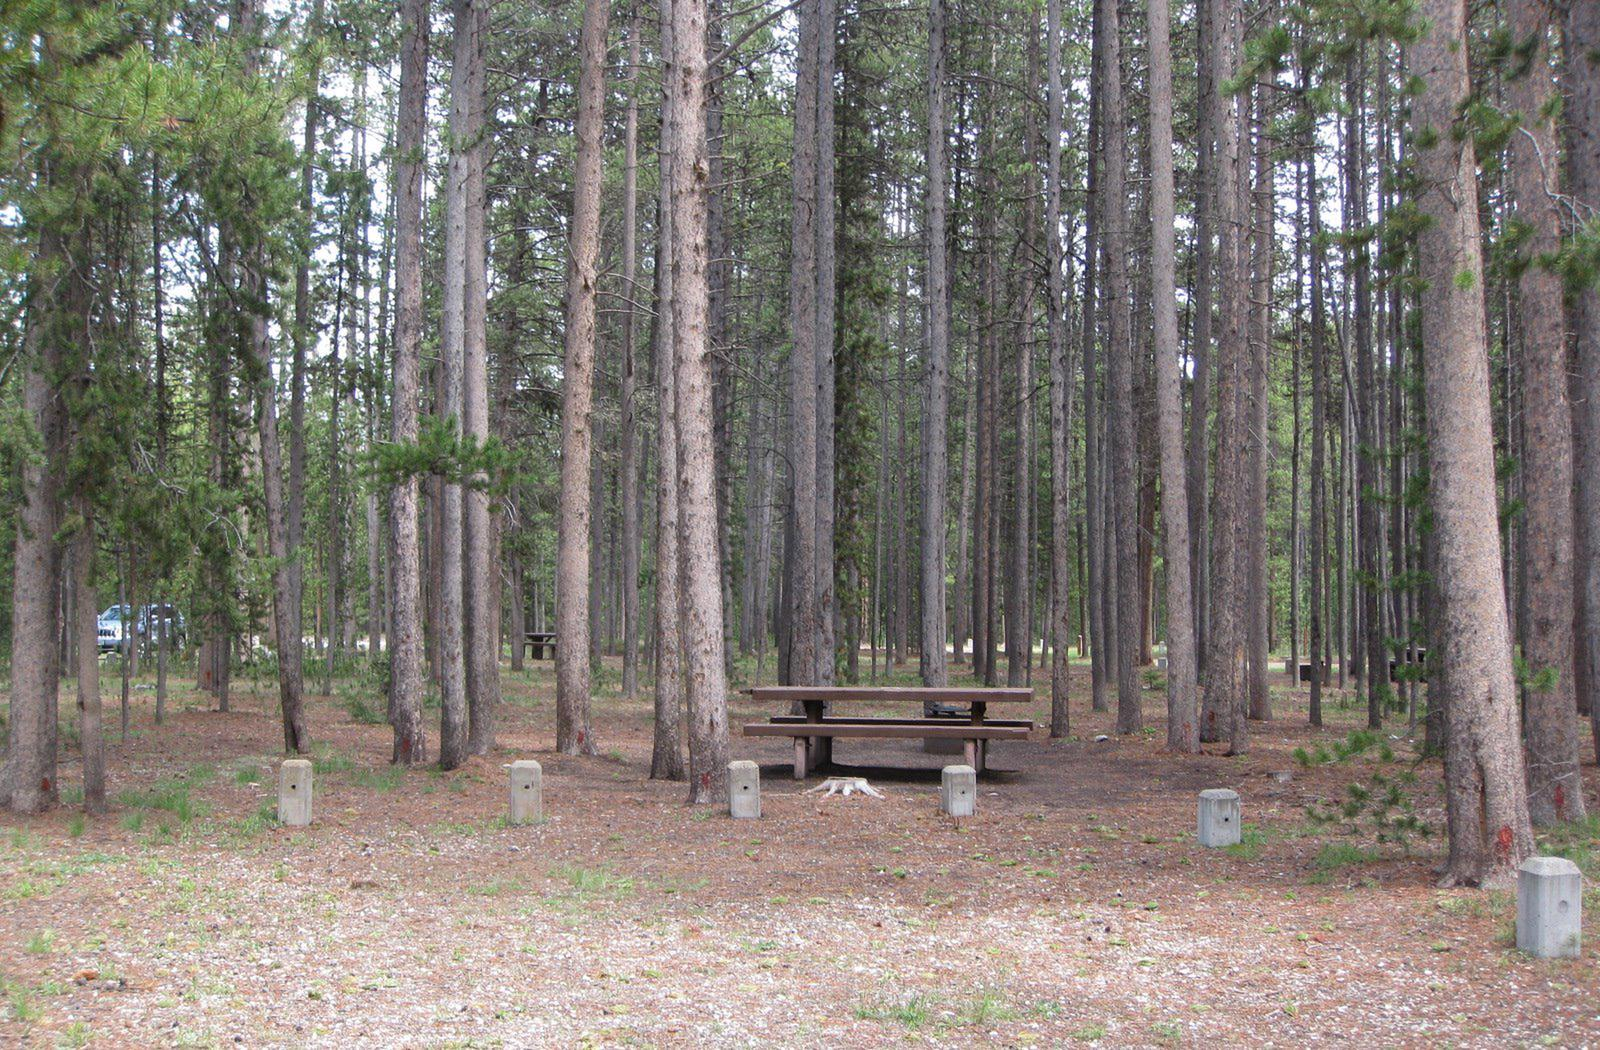 Site D4, surrounded by pine trees, picnic table & fire ringSite D4